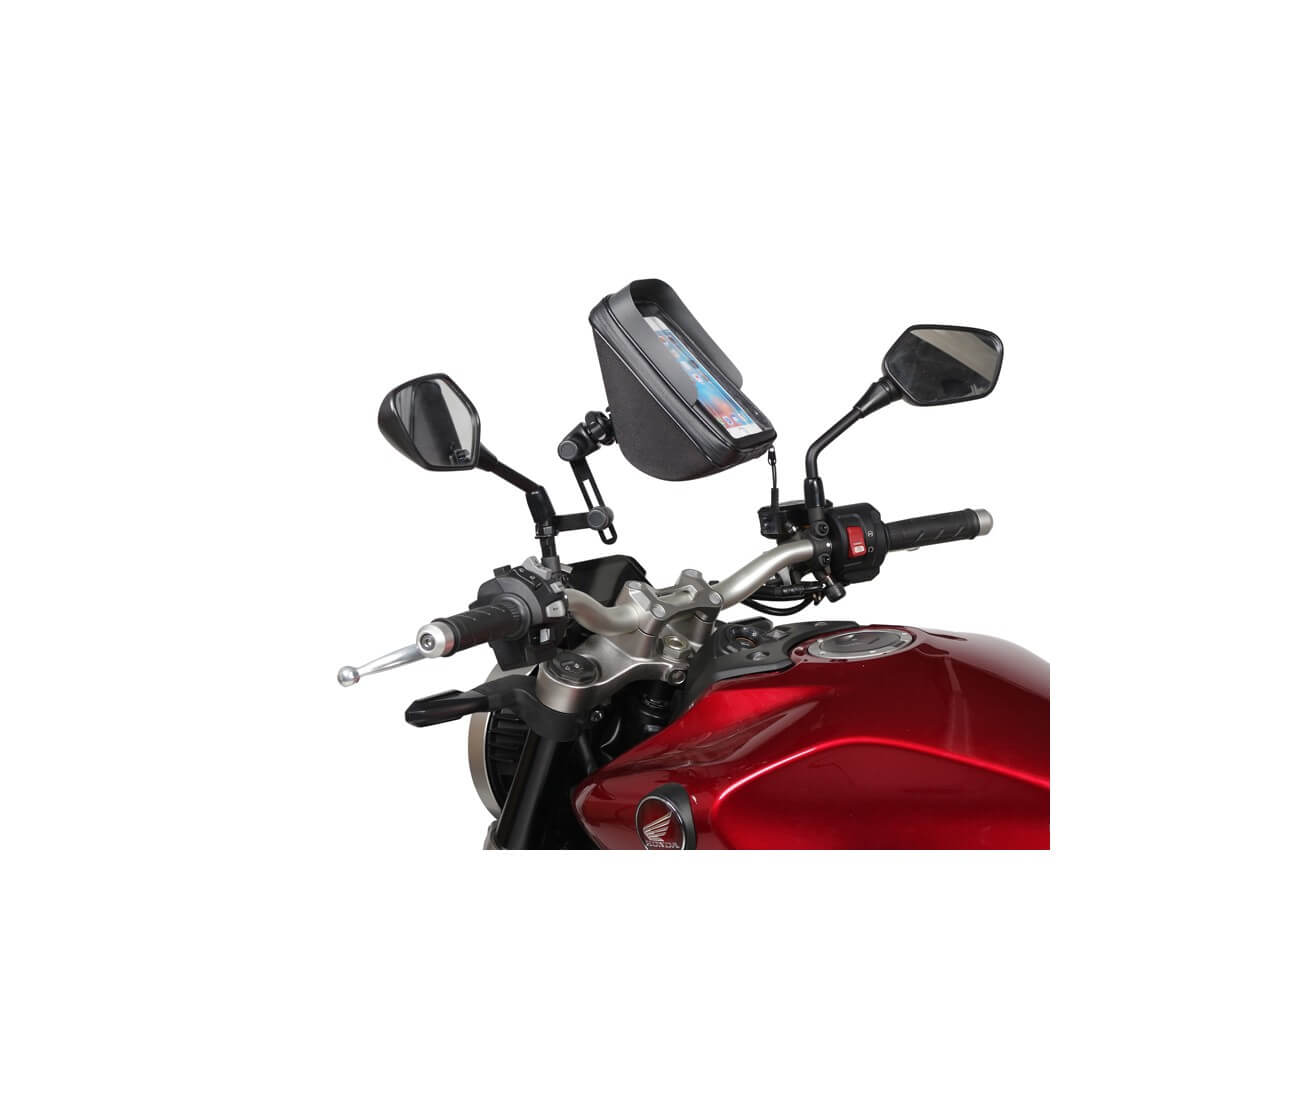 Embouts de Guidon Puig Honda PCX 125 10-18 court or